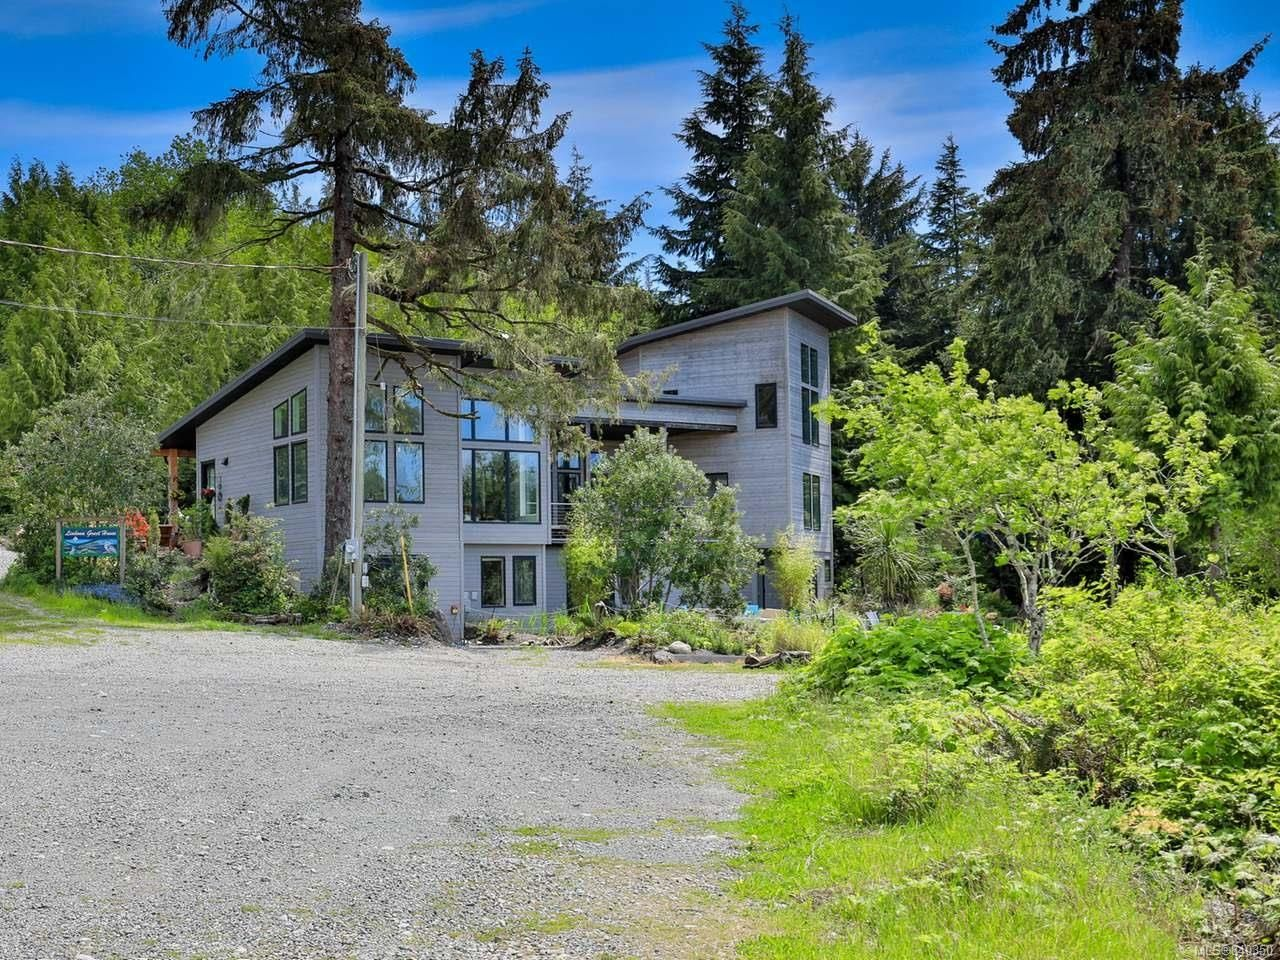 Photo 69: Photos: 1068 Helen Rd in UCLUELET: PA Ucluelet House for sale (Port Alberni)  : MLS®# 840350